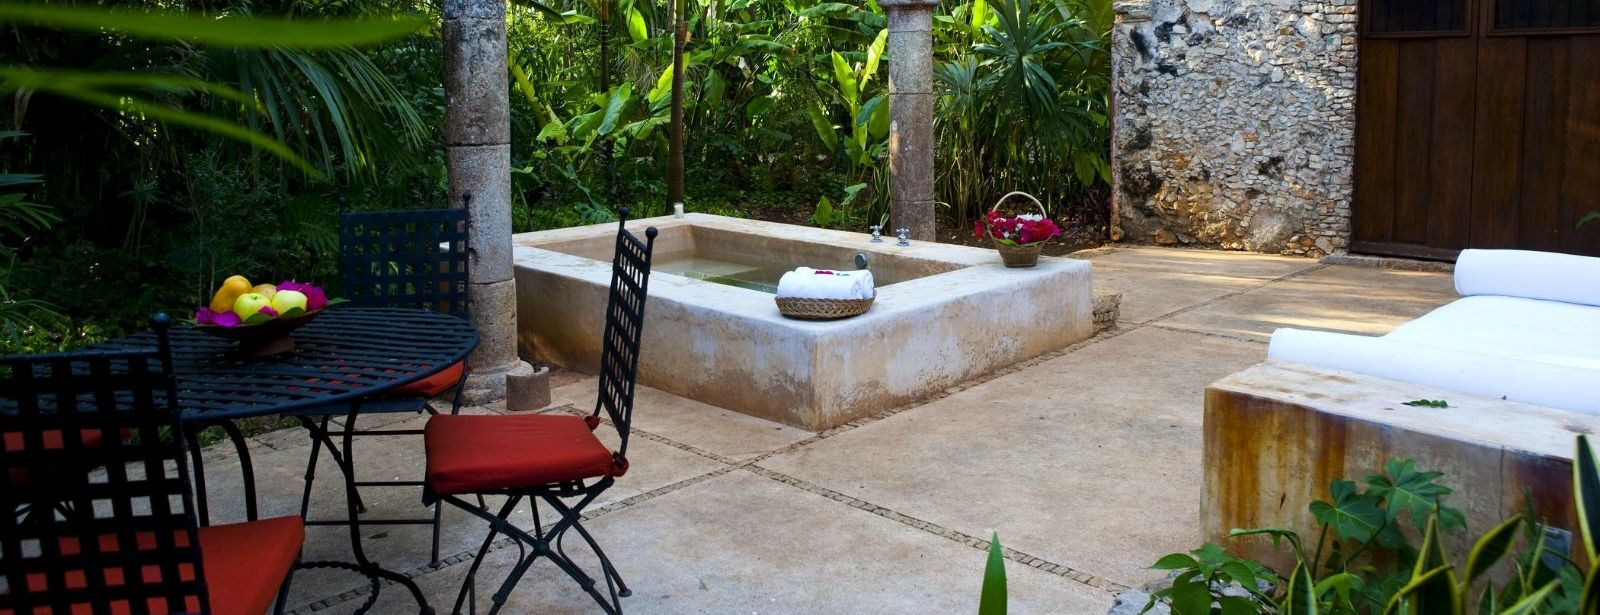 Hacienda Santa Rosa - Outdoor Plunge Pool Room